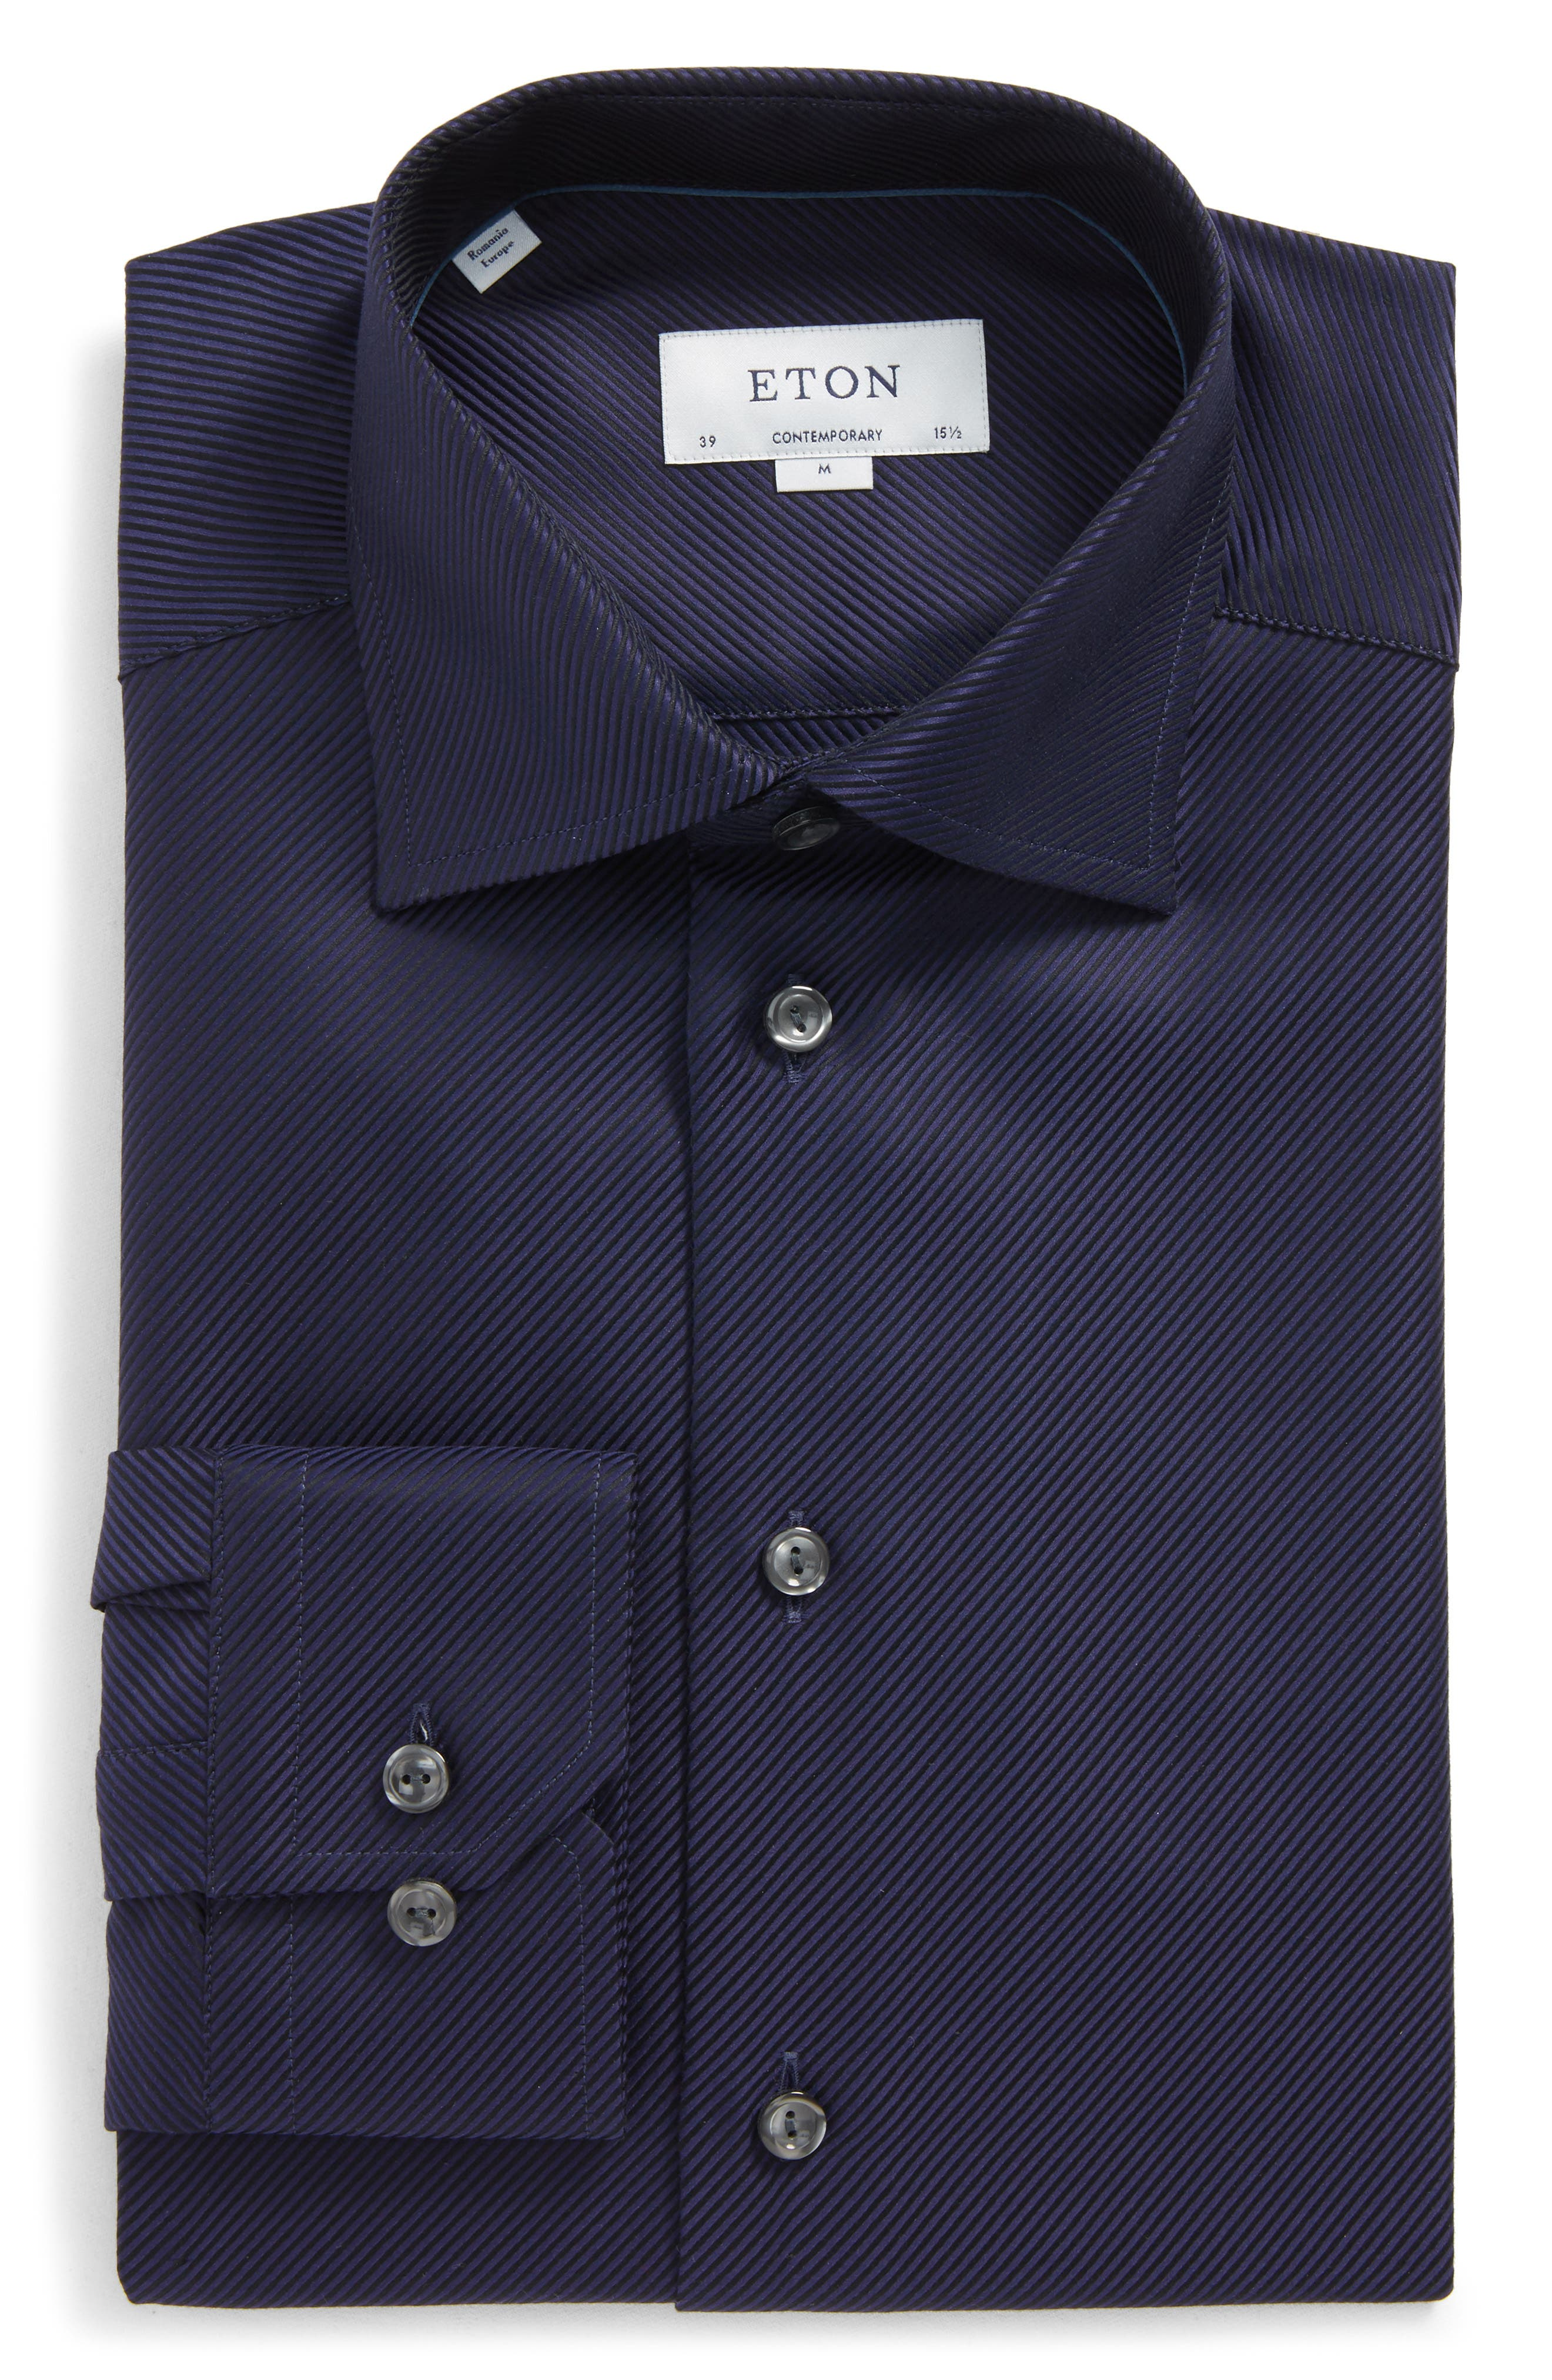 Eton Contemporary Fit Houndstooth Dress Shirt